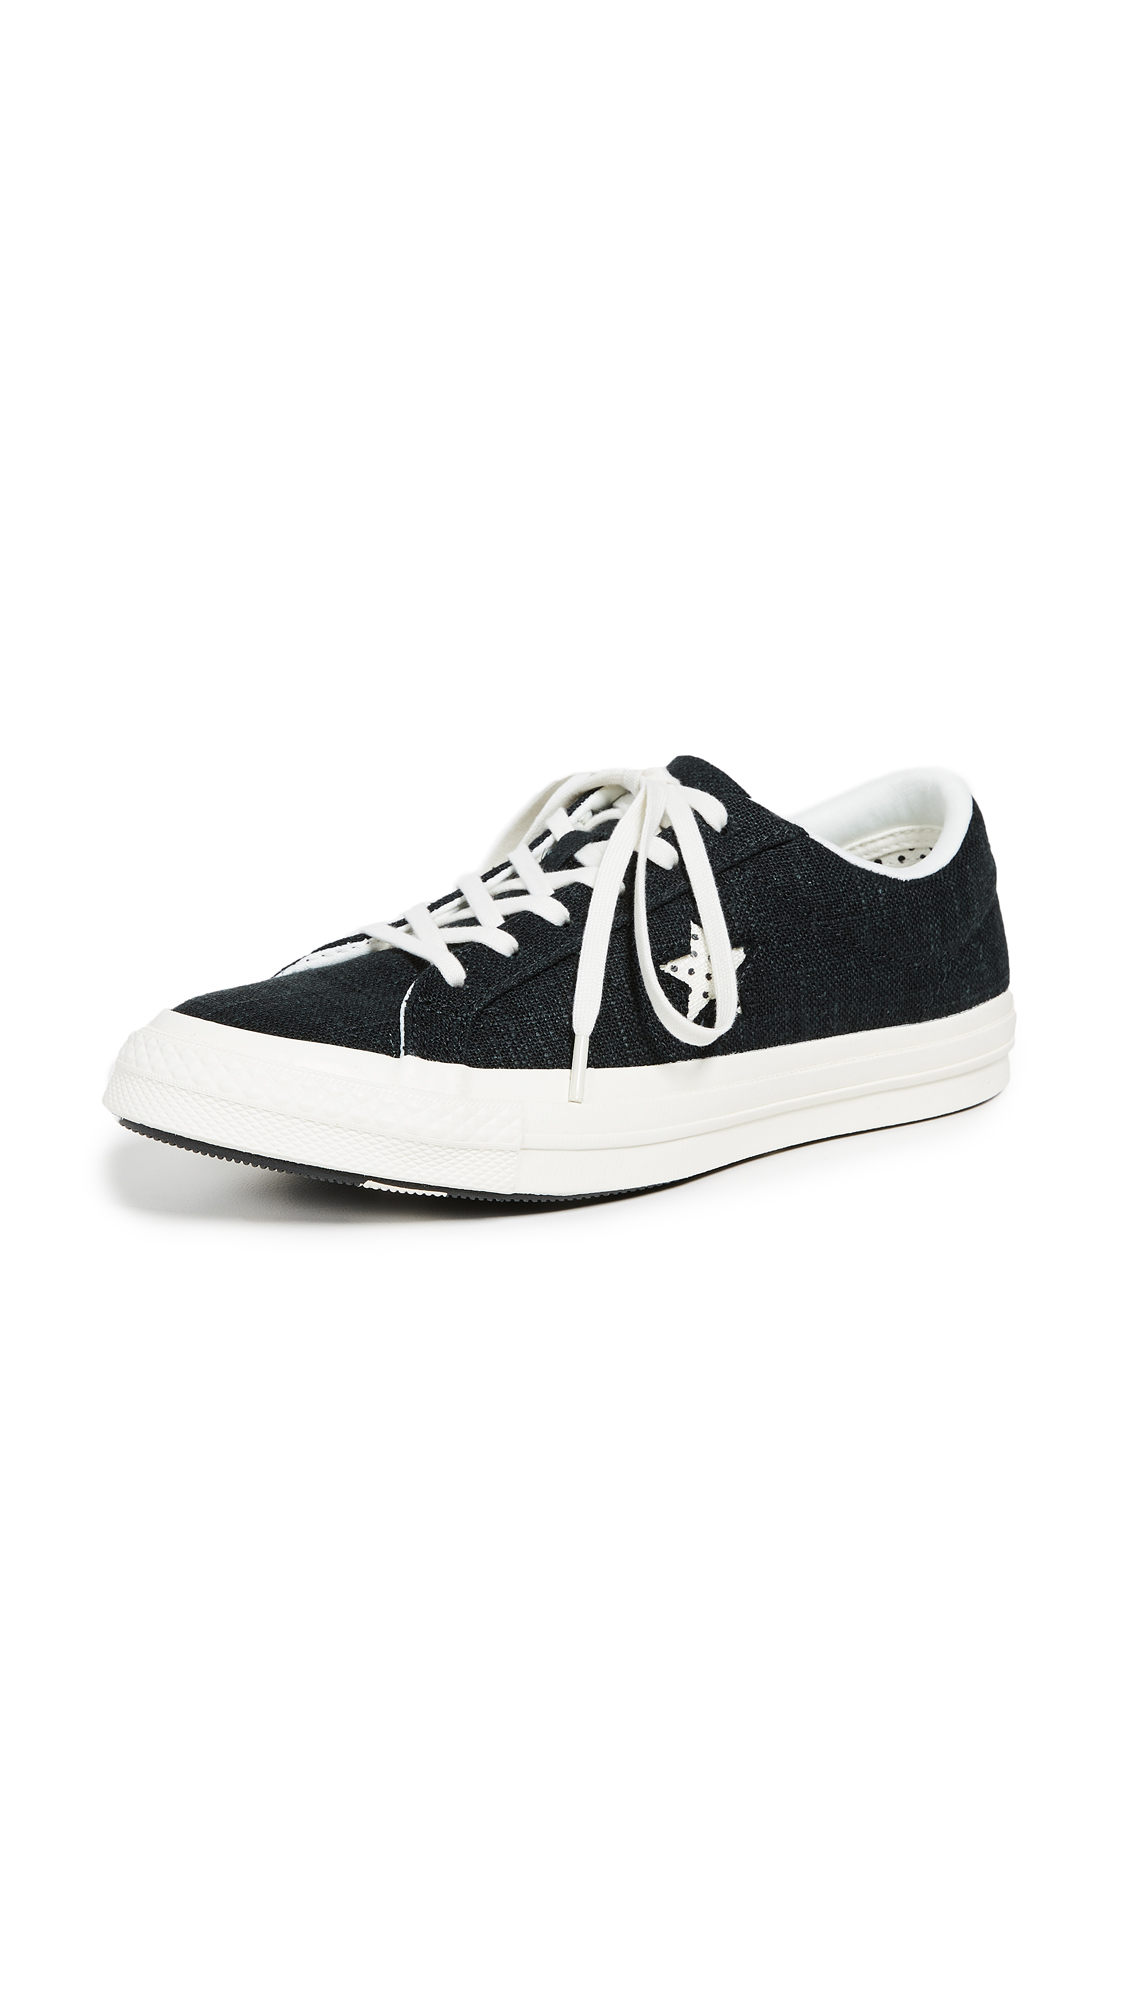 Photo of Converse One Star Ox Sneakers - buy Converse shoes